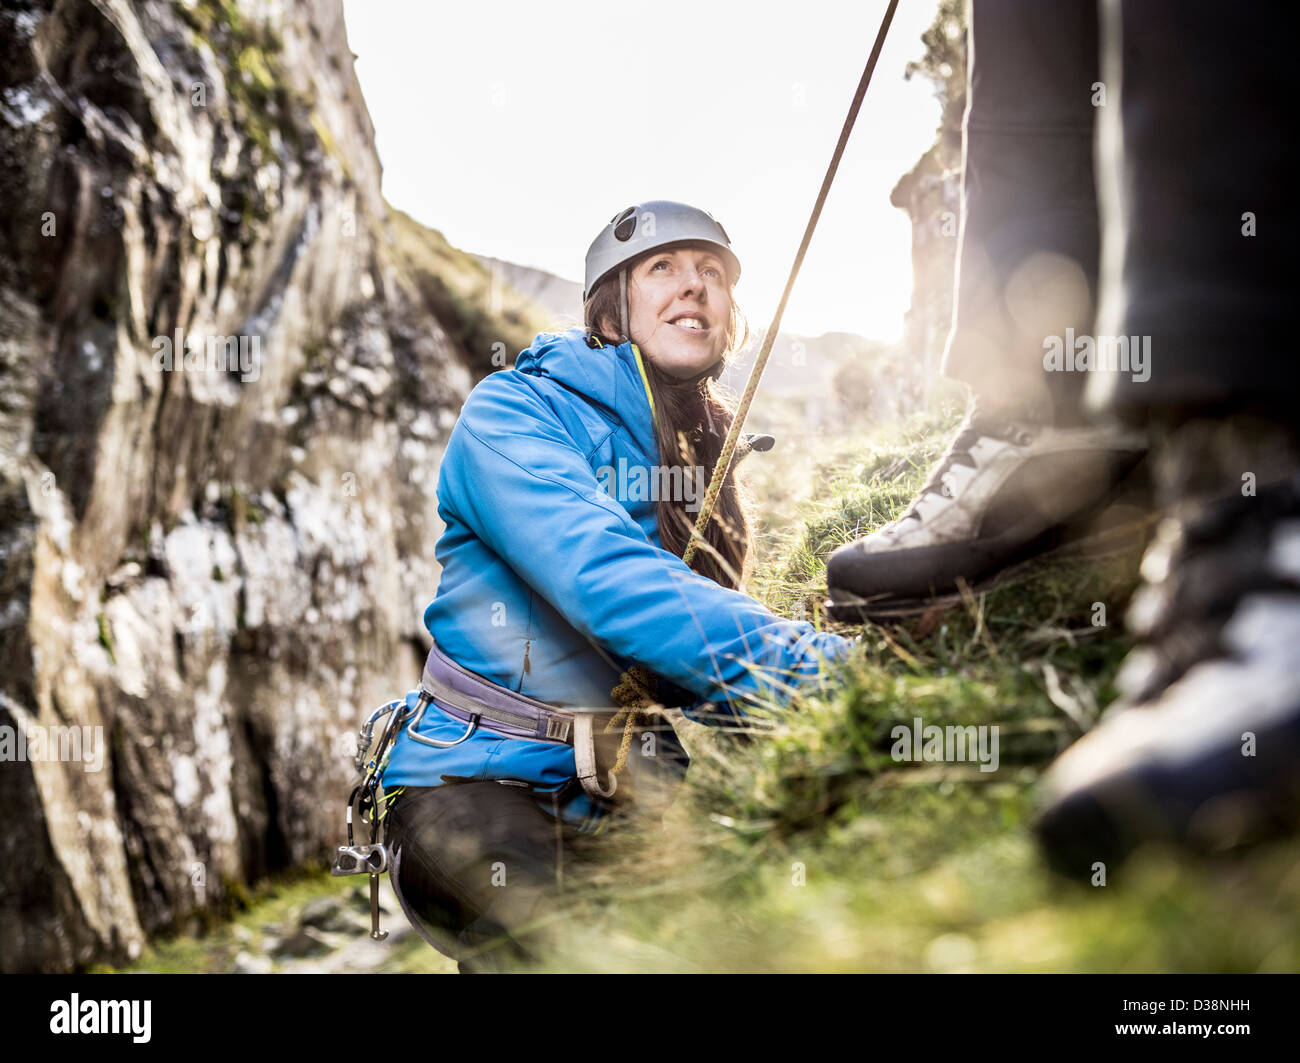 Rock climber scaling steep rock face Photo Stock